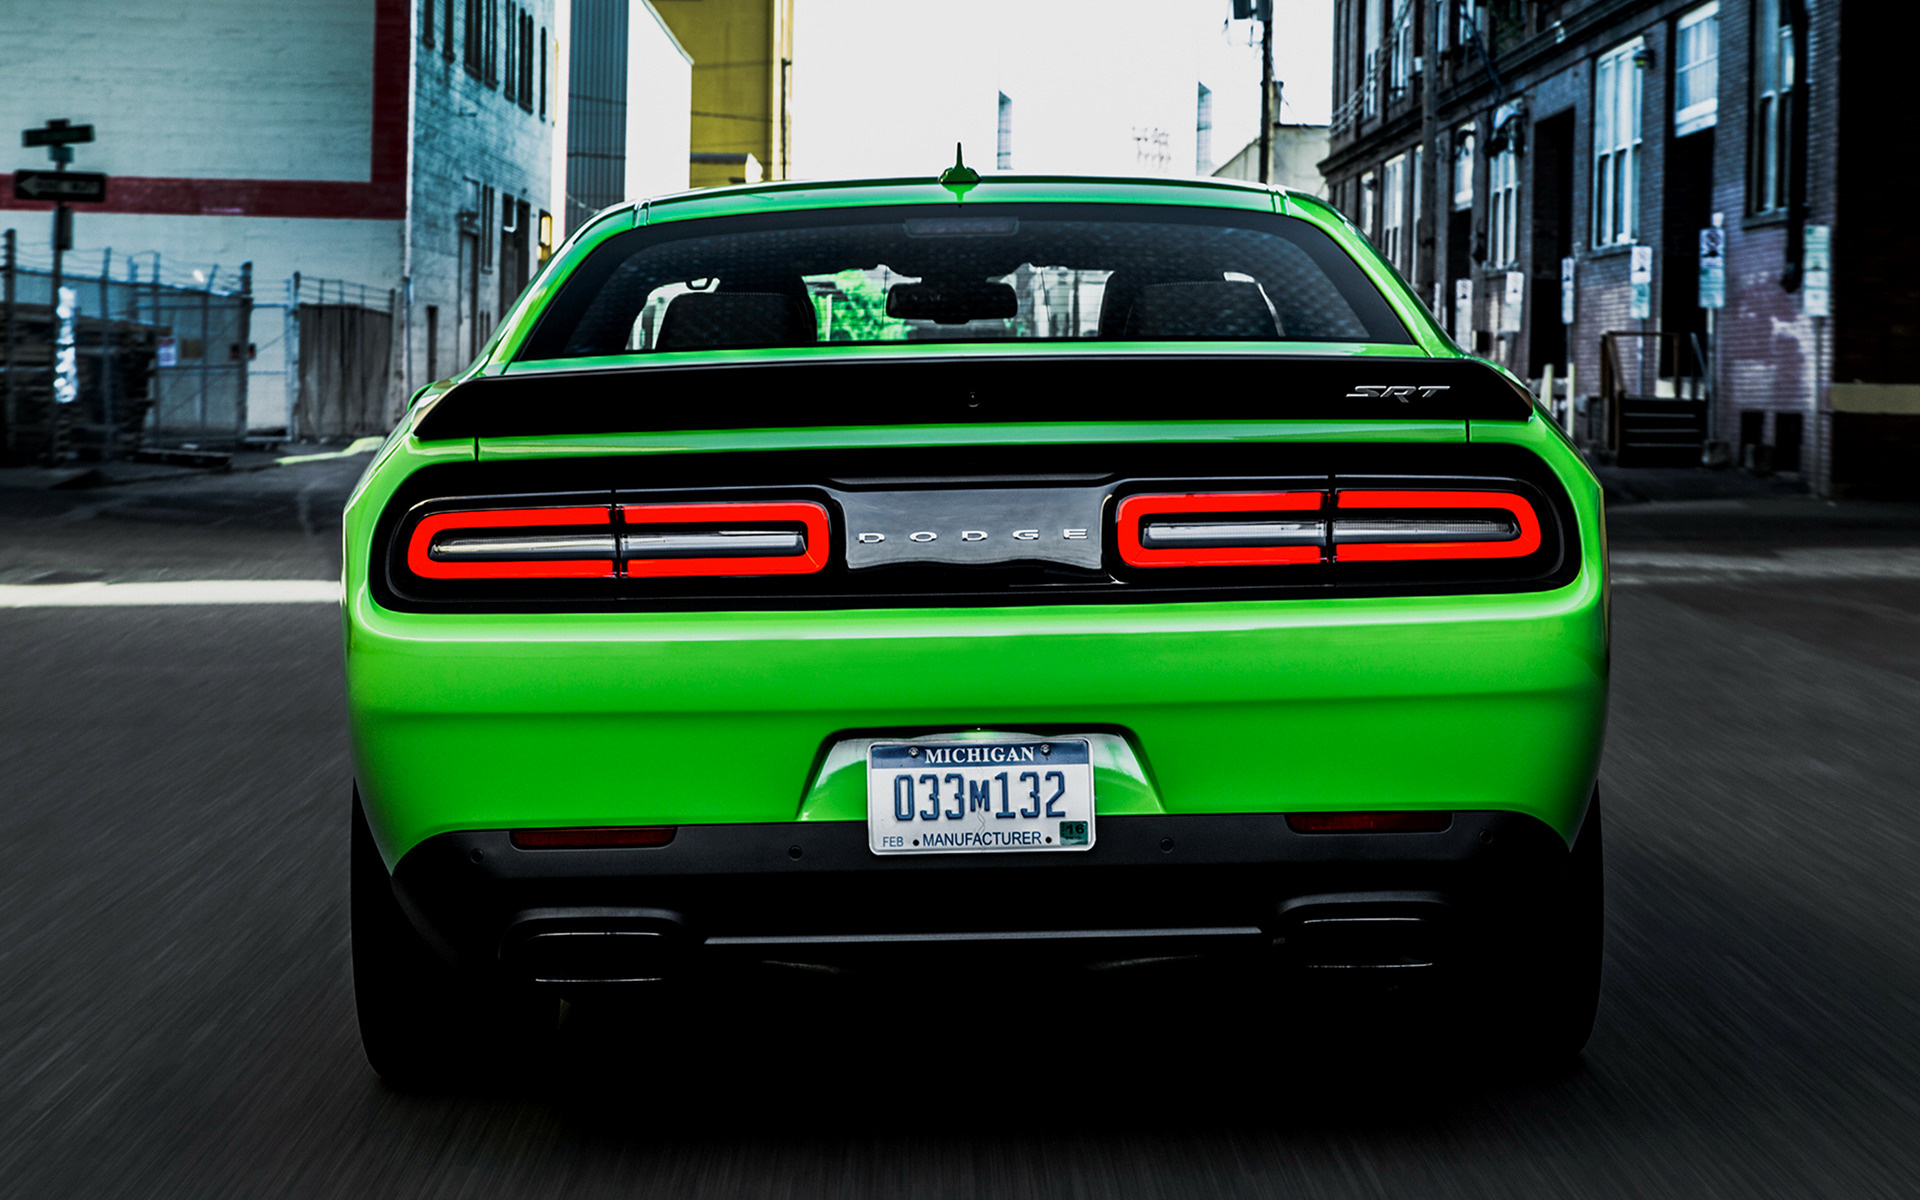 ... Challenger SRT Hellcat (2015) Wallpapers and HD Images - Car Pixel